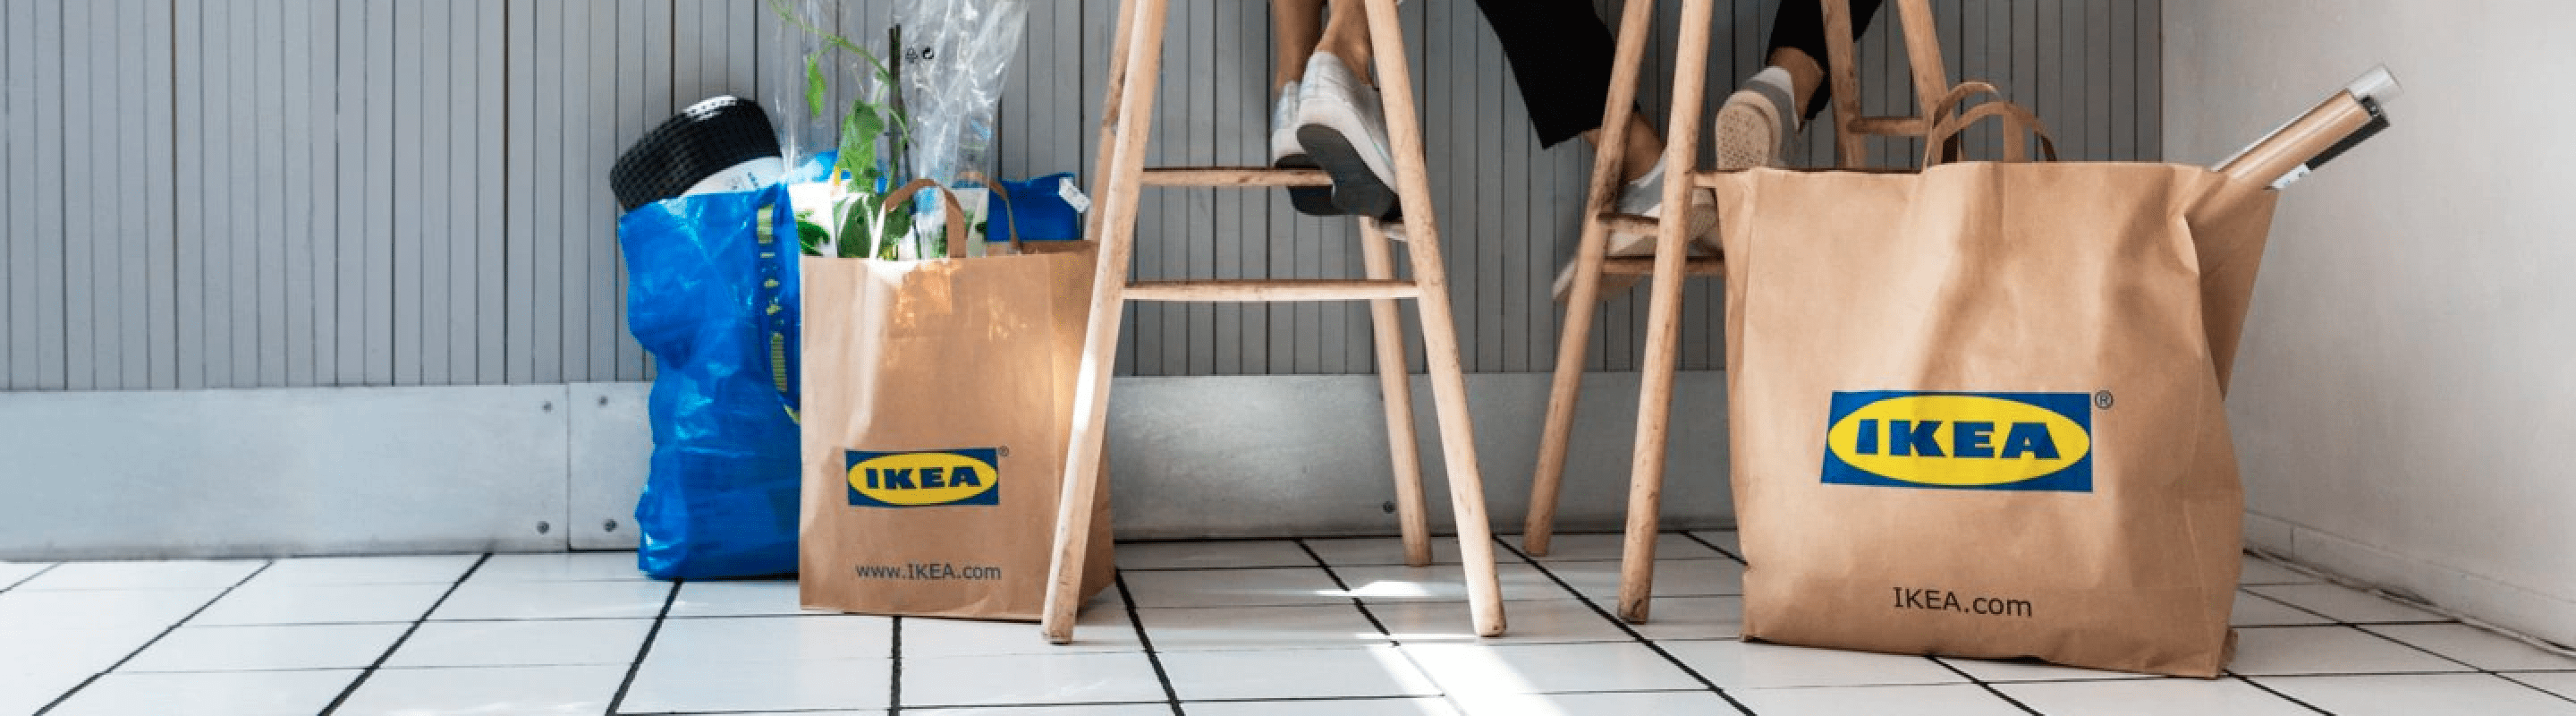 ikea bags in a photograph